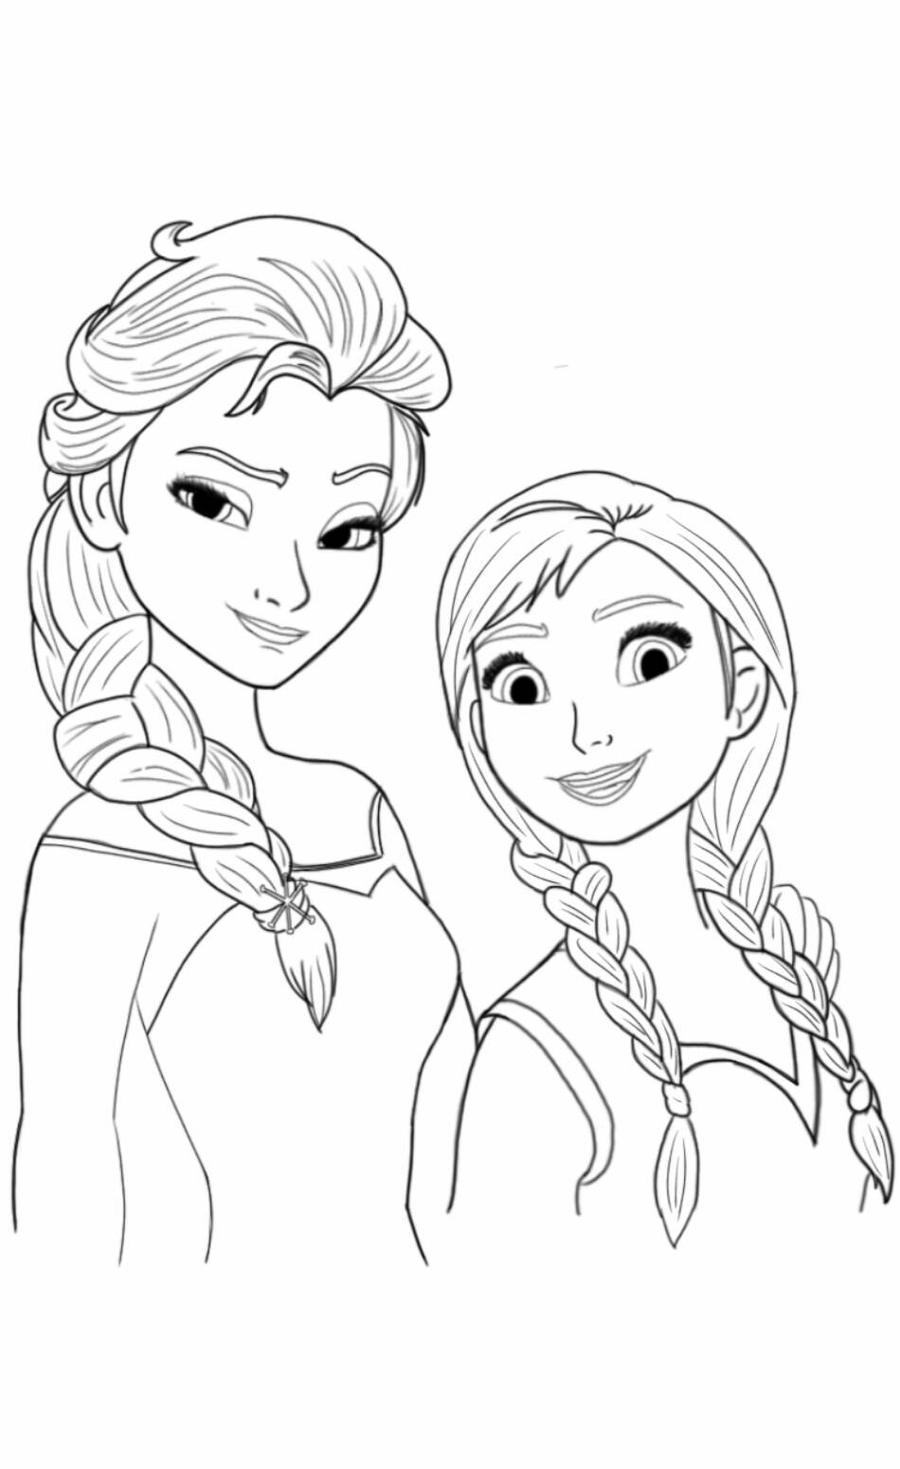 elsa and anna pictures to color elsa and anna forever coloring page pictures and elsa anna color to